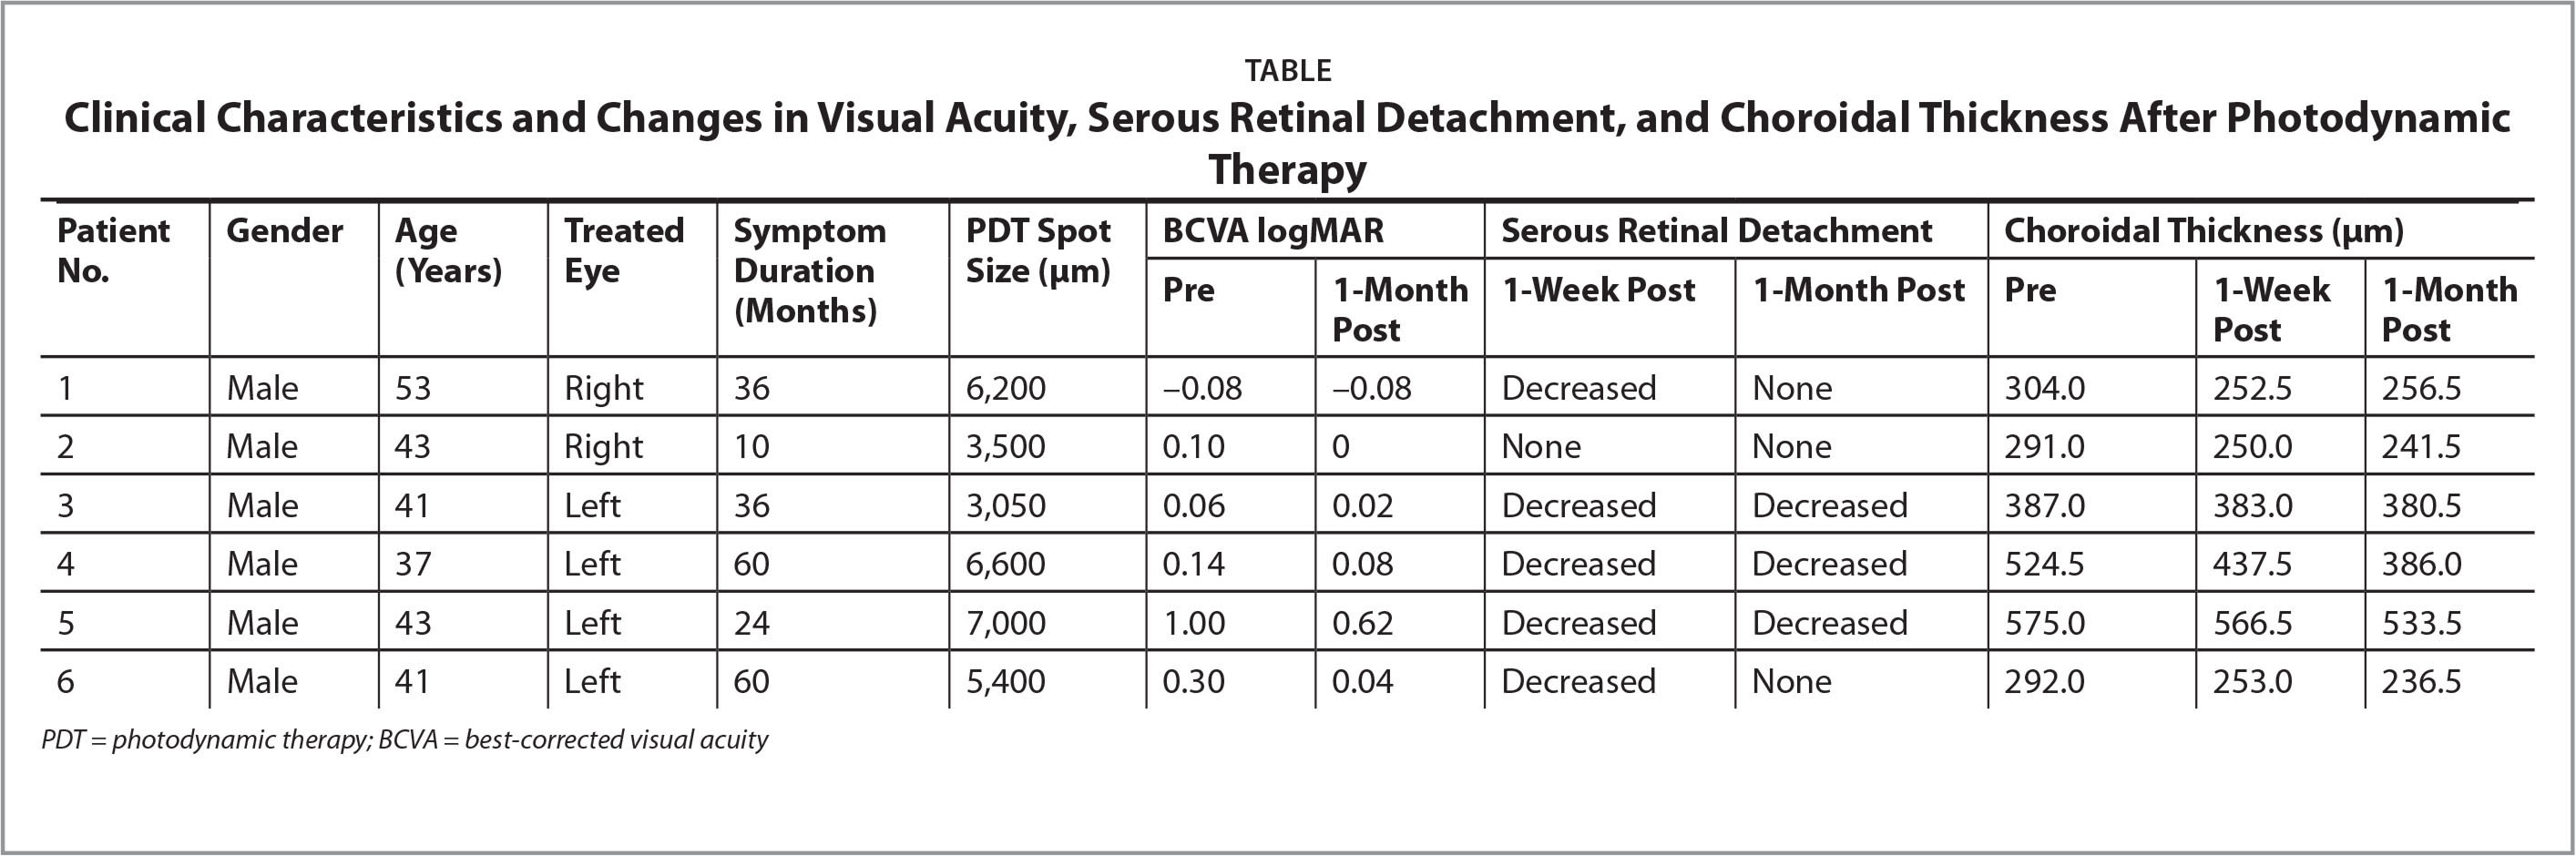 A;Clinical Characteristics and Changes in Visual Acuity, Serous Retinal Detachment, and Choroidal Thickness After Photodynamic Therapy